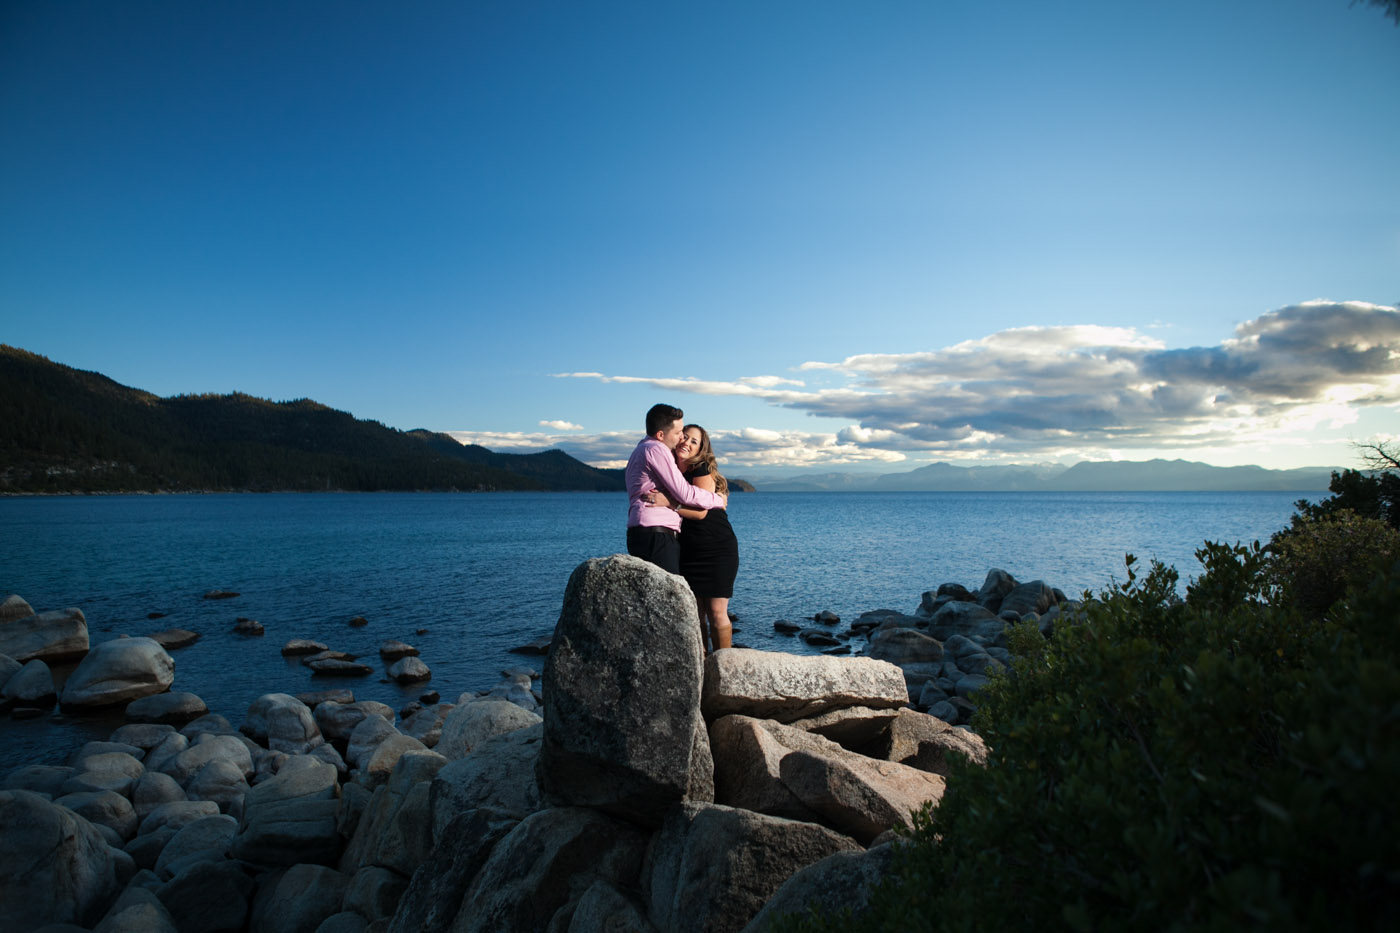 engagement_lake_tahoe_2013_sunset-6